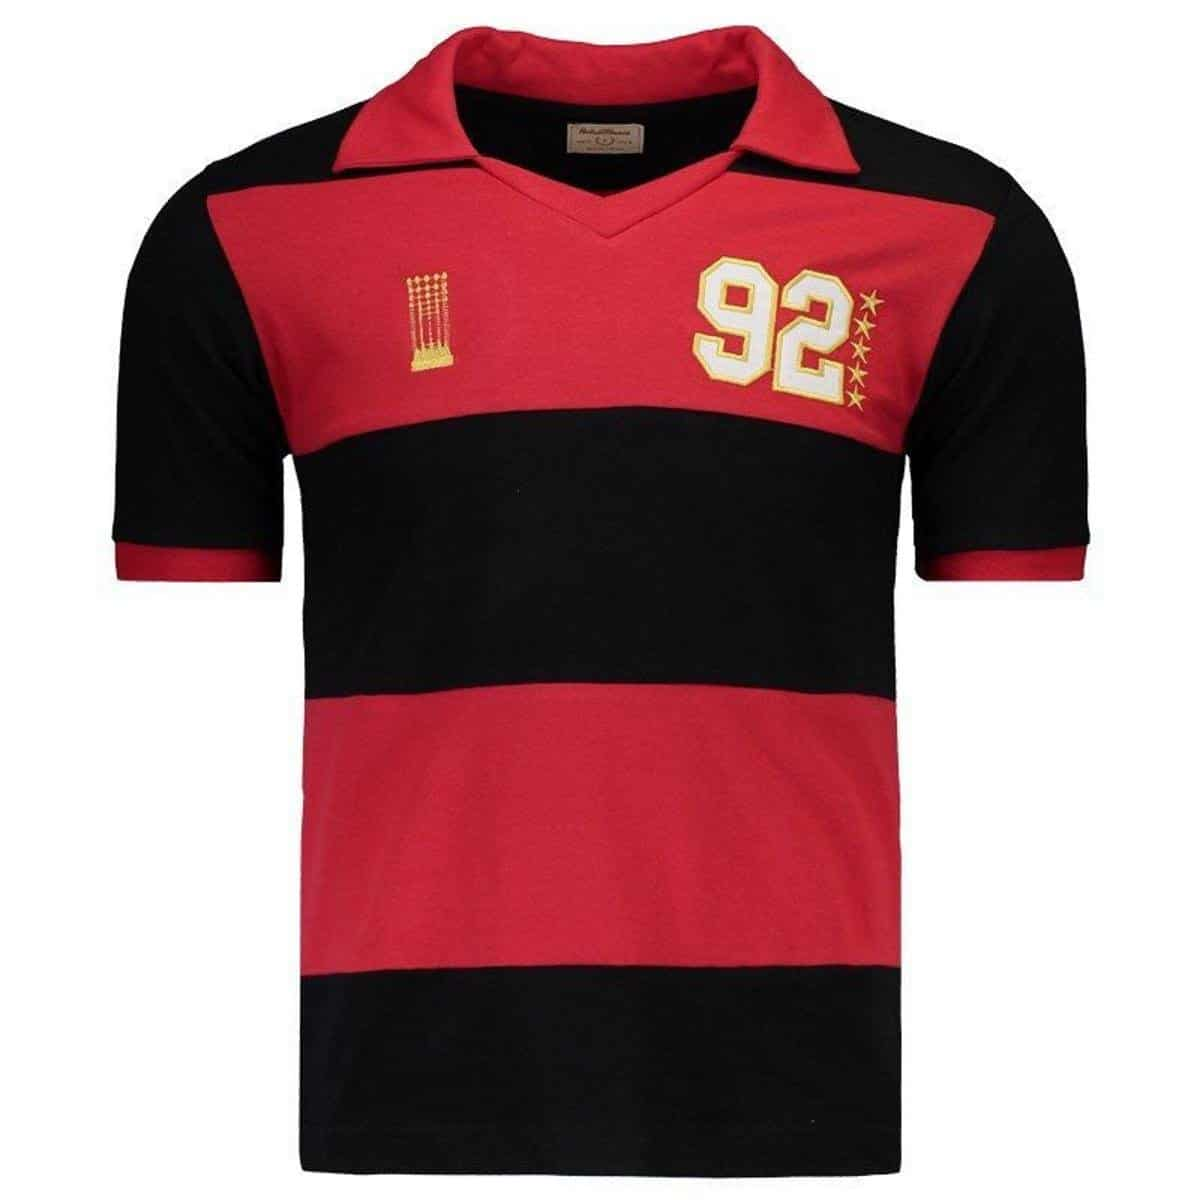 Camisa Retrô do Flamengo